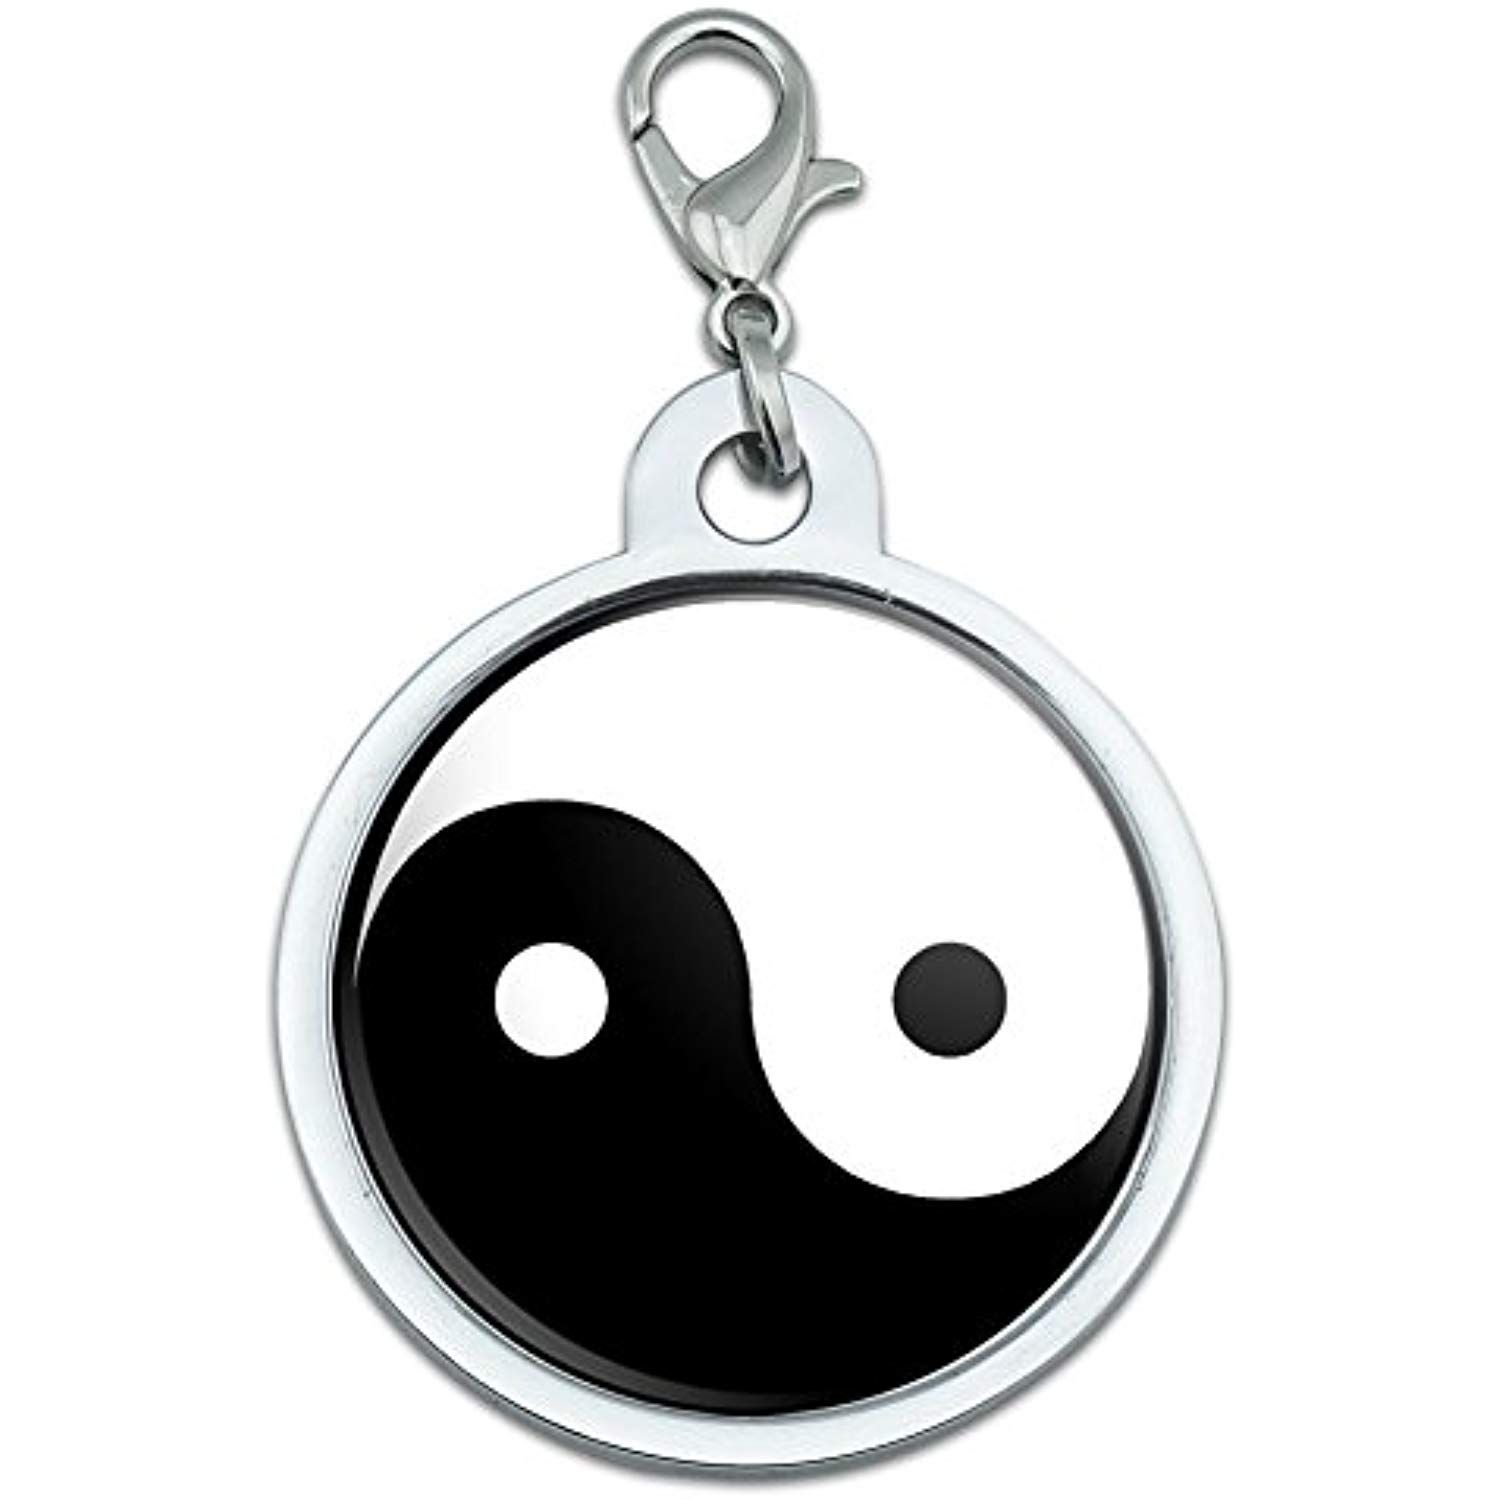 Yin Yang Chinese Symbol Large Chrome Plated Metal Pet Dog Cat Id